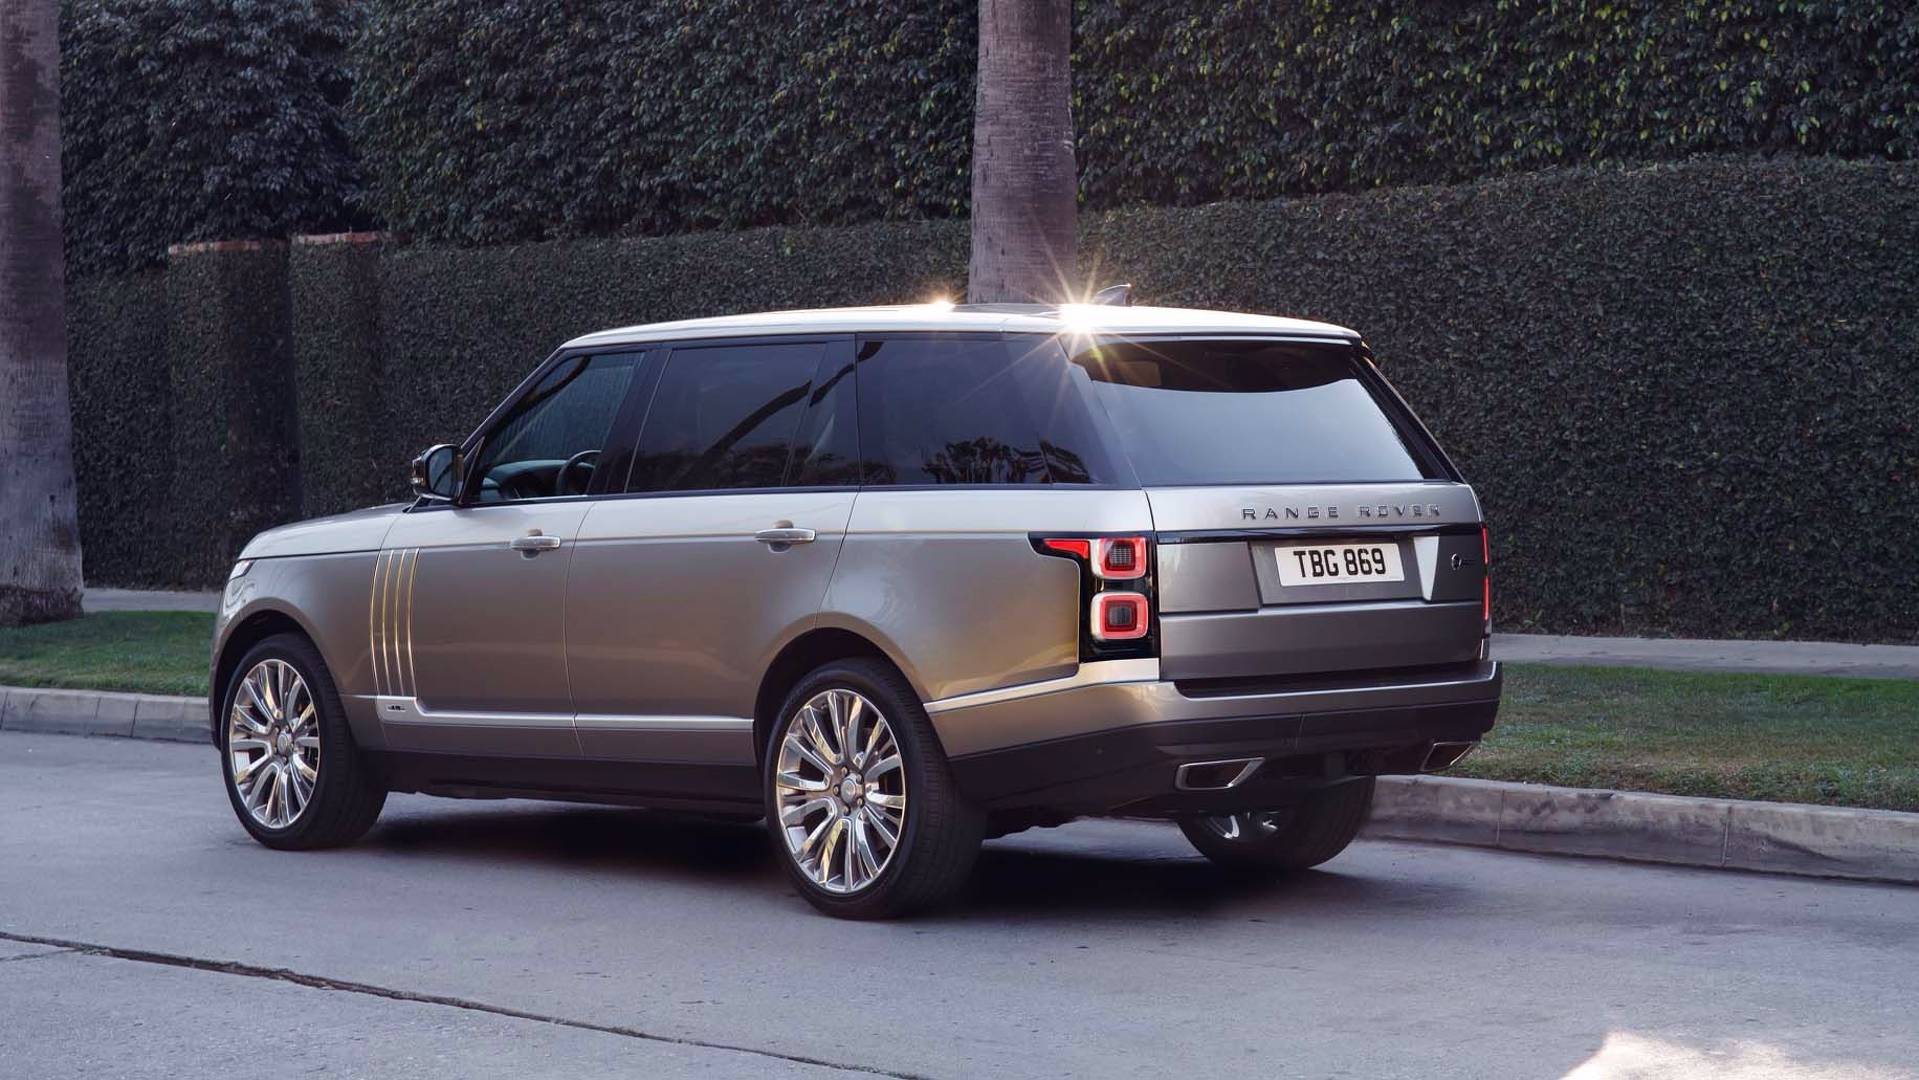 Land Rover Hints At Ultra Luxurious Range Rover With Two Doors